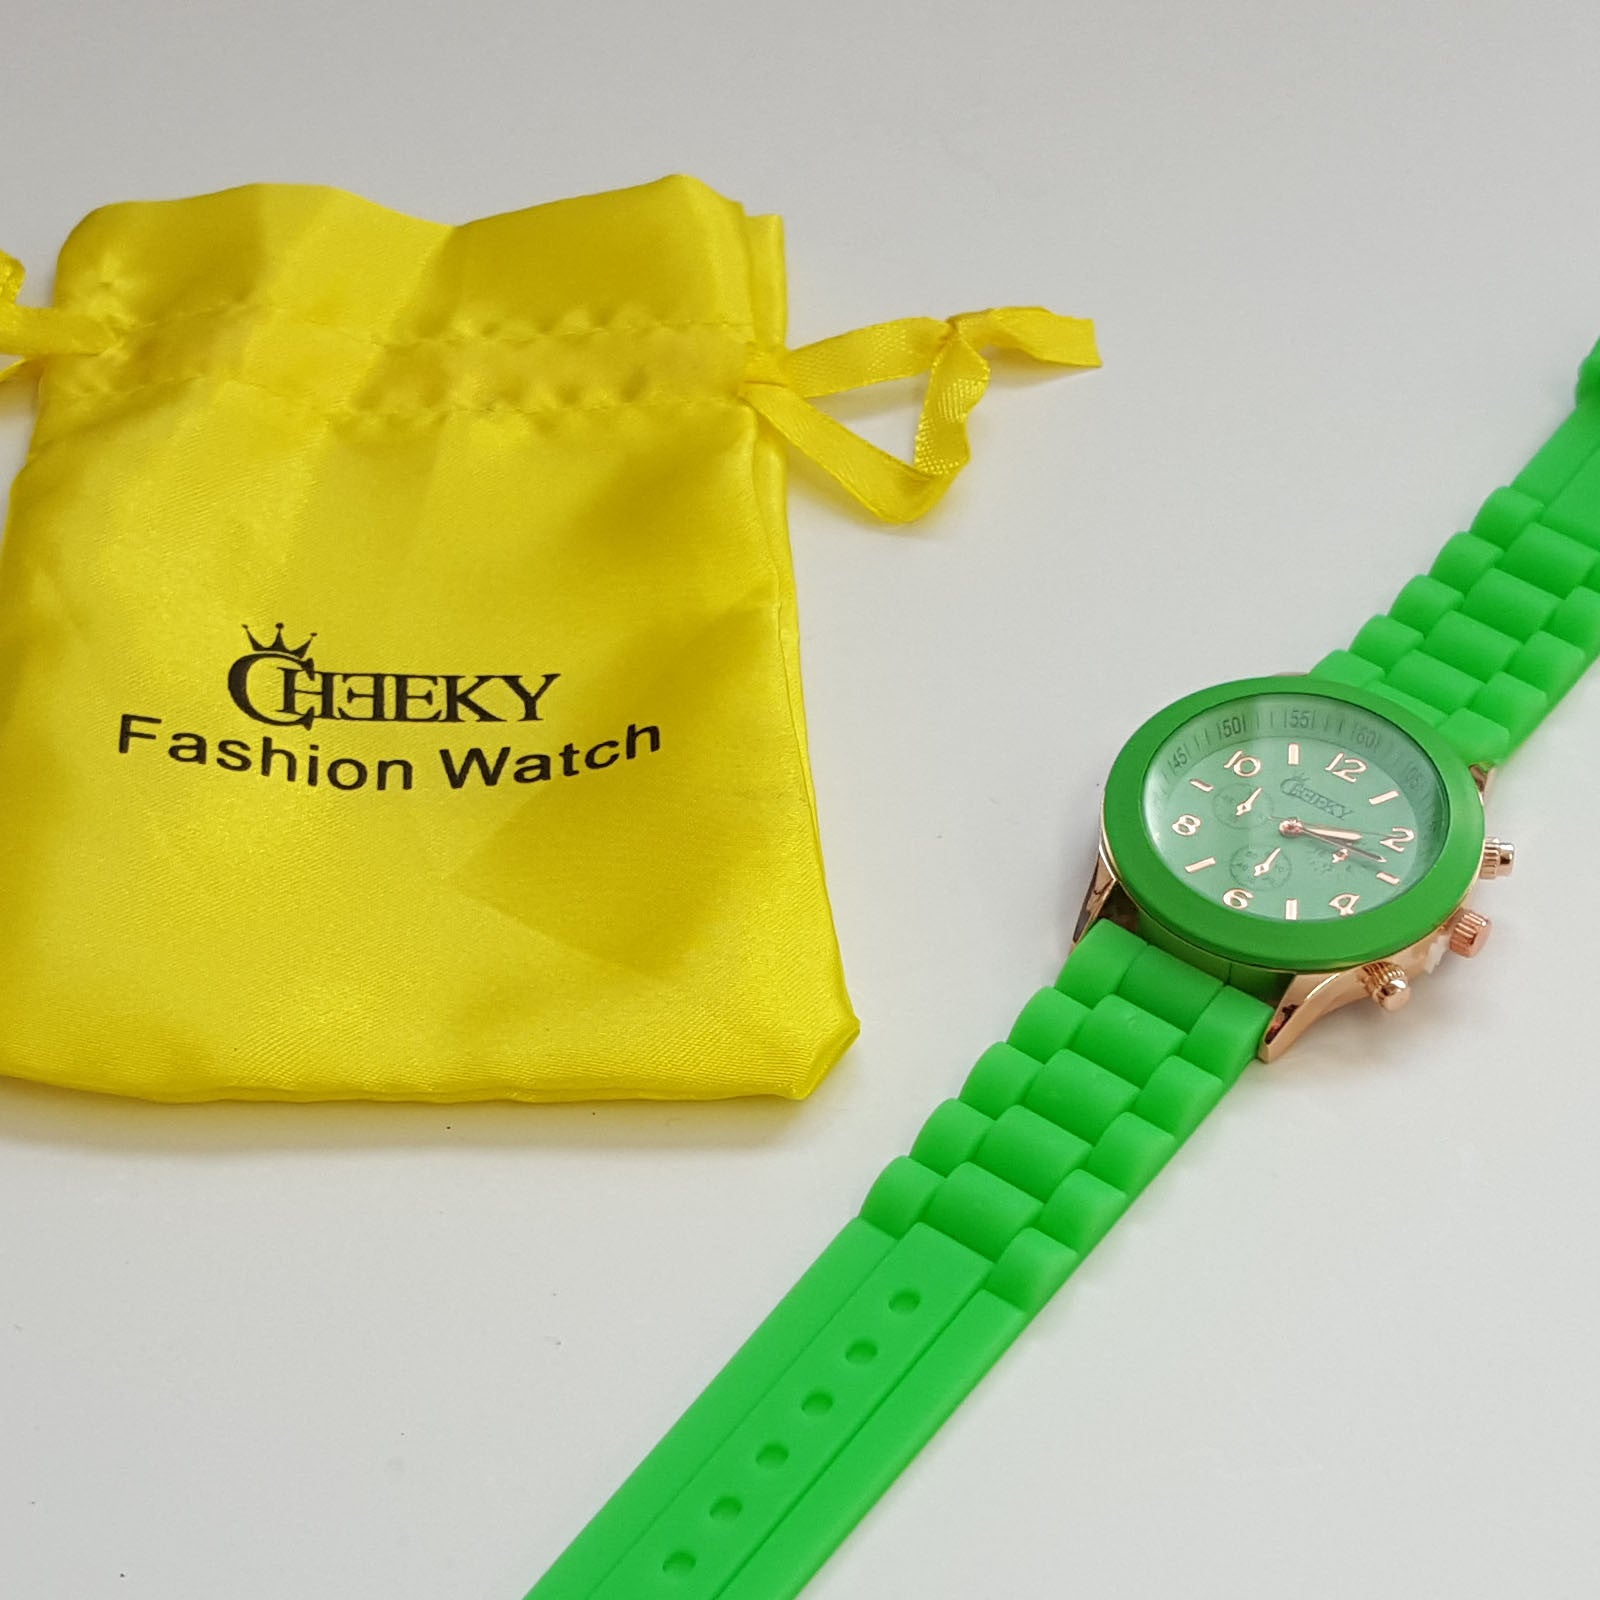 Stylish Mens' Green Silicone w/ Rose Gold Fashion Watch by Cheeky HE-13 Green